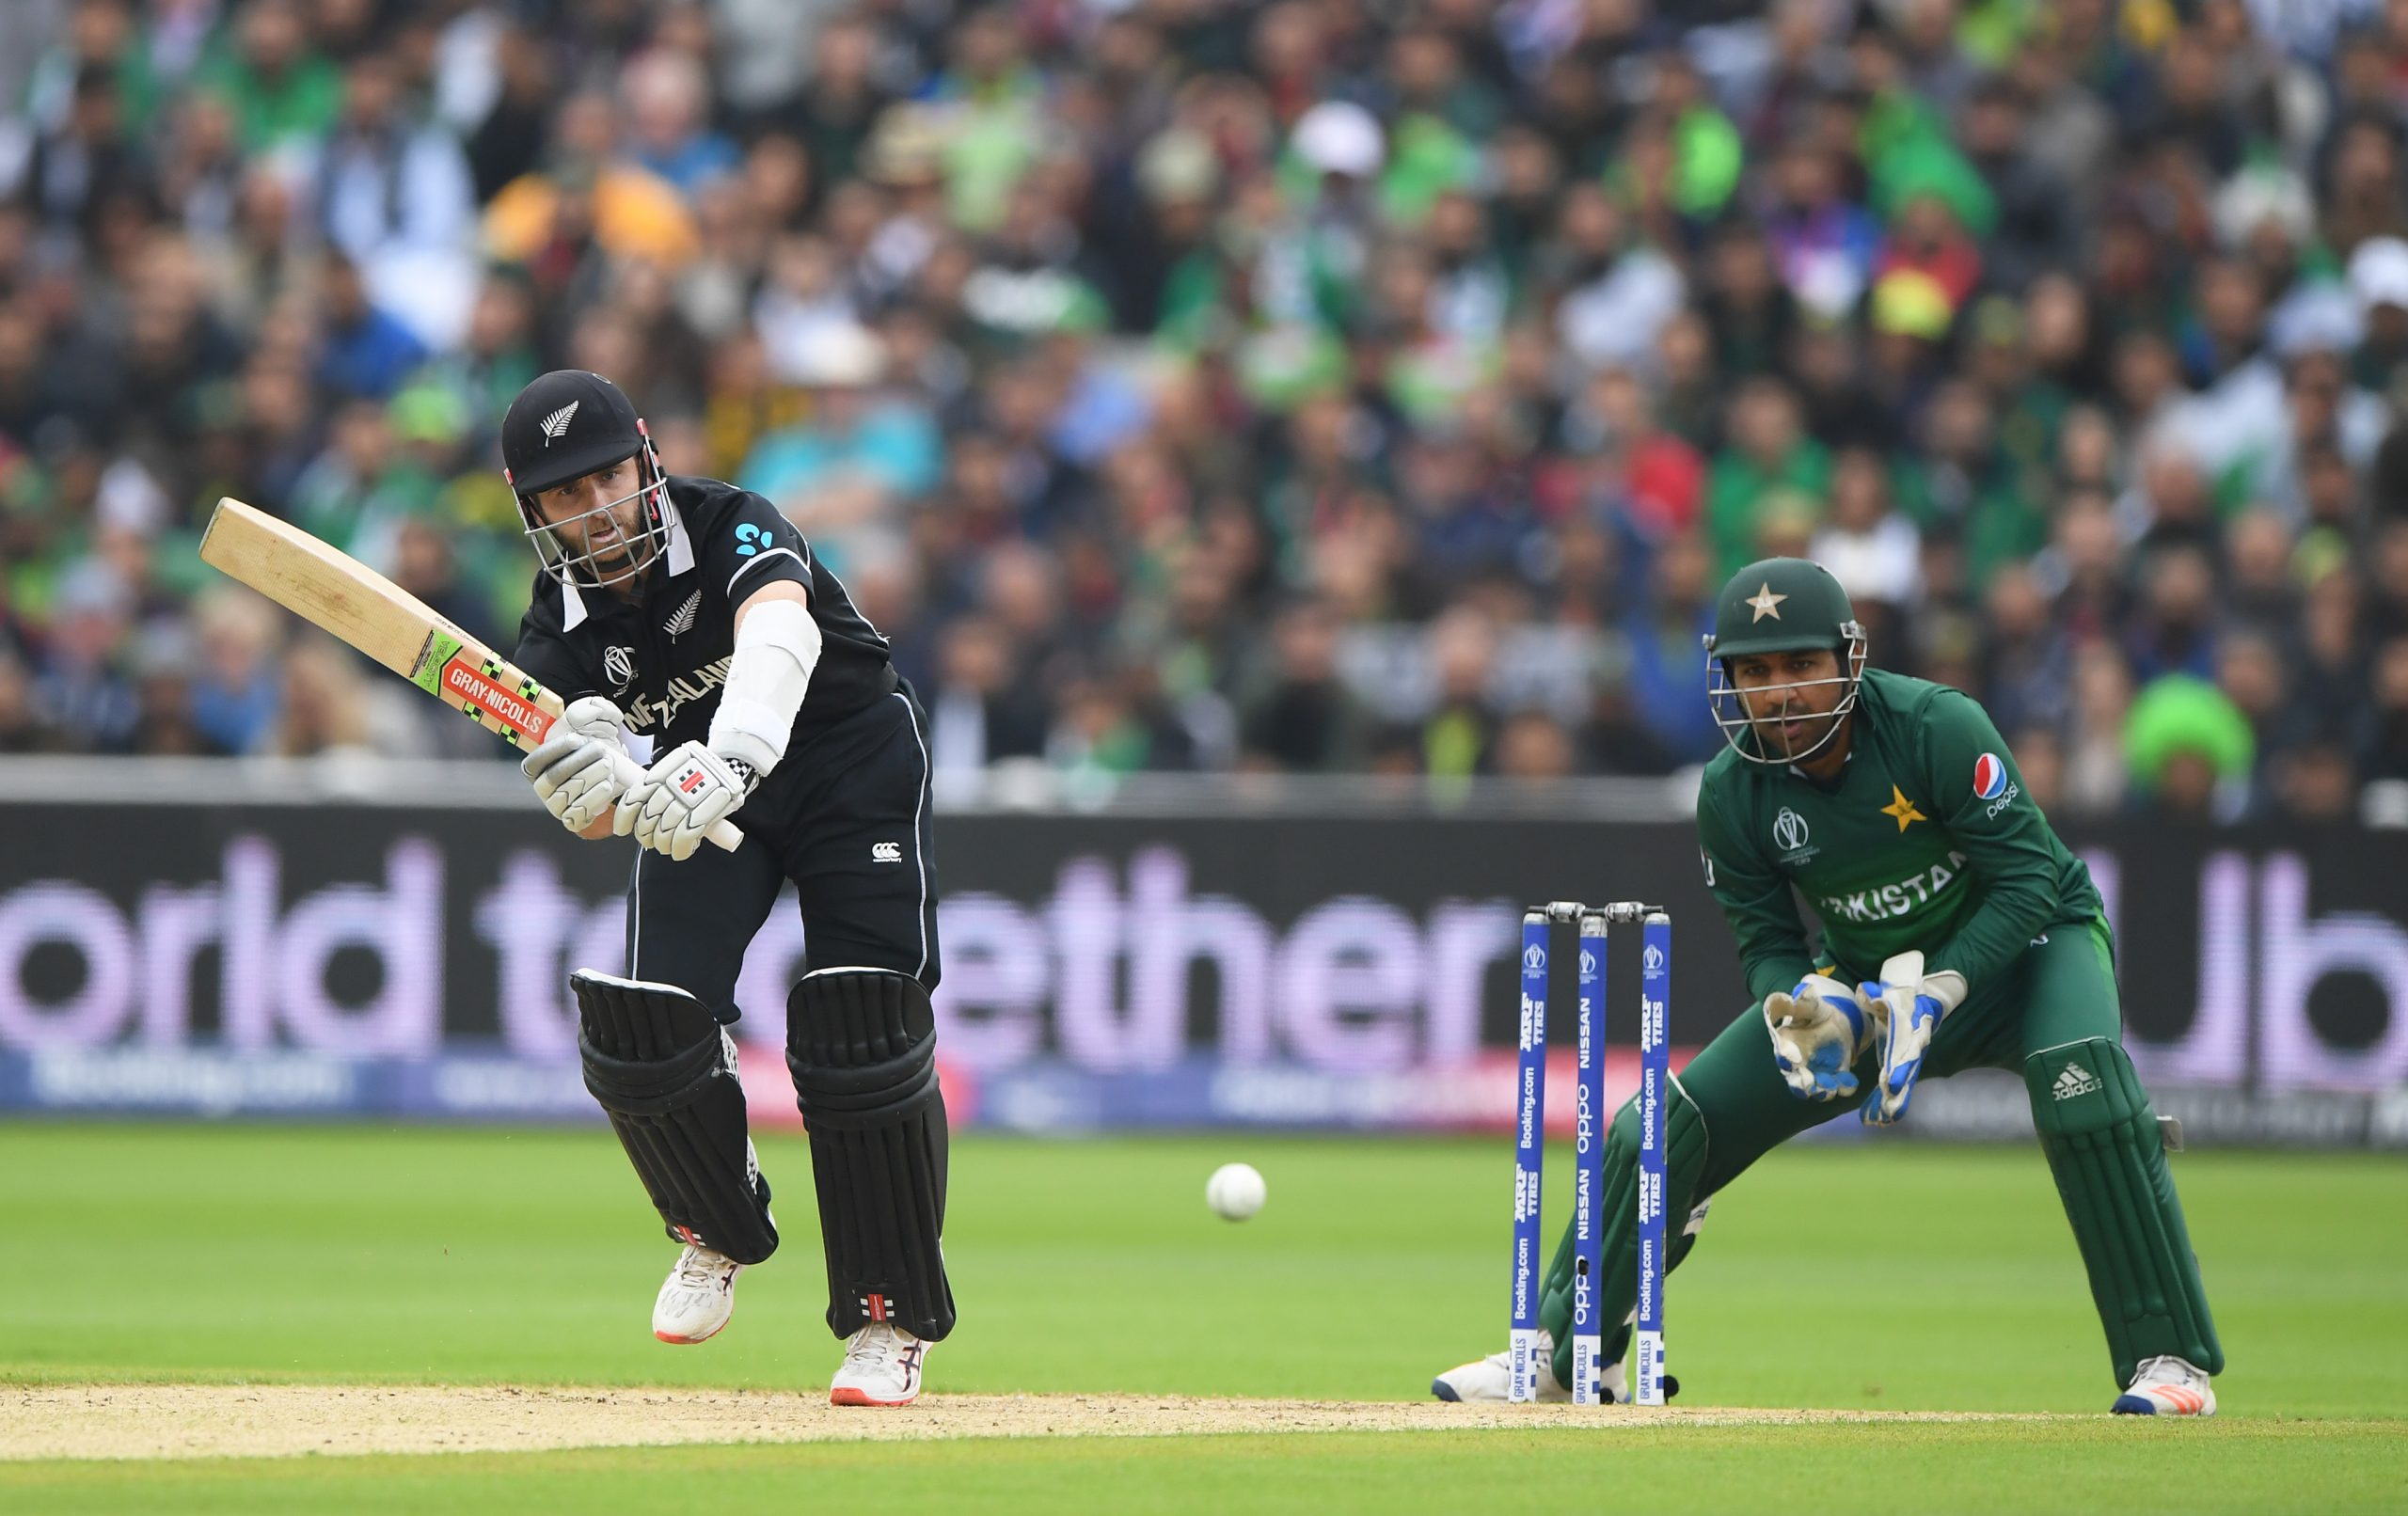 New Zealand announce first Pakistan tour in 18 years